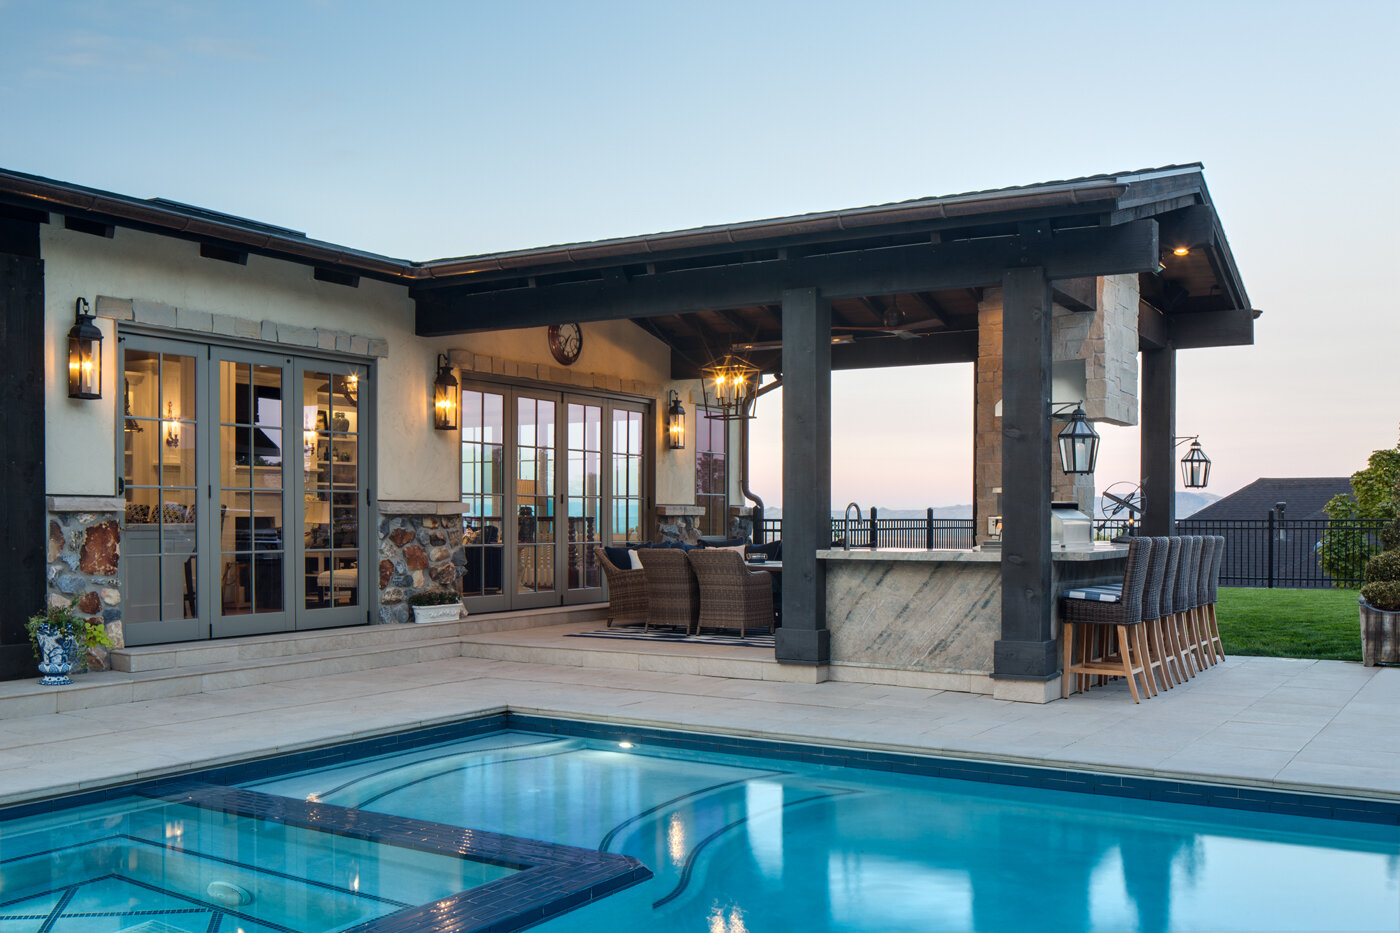 Pool and Poolhouse 2